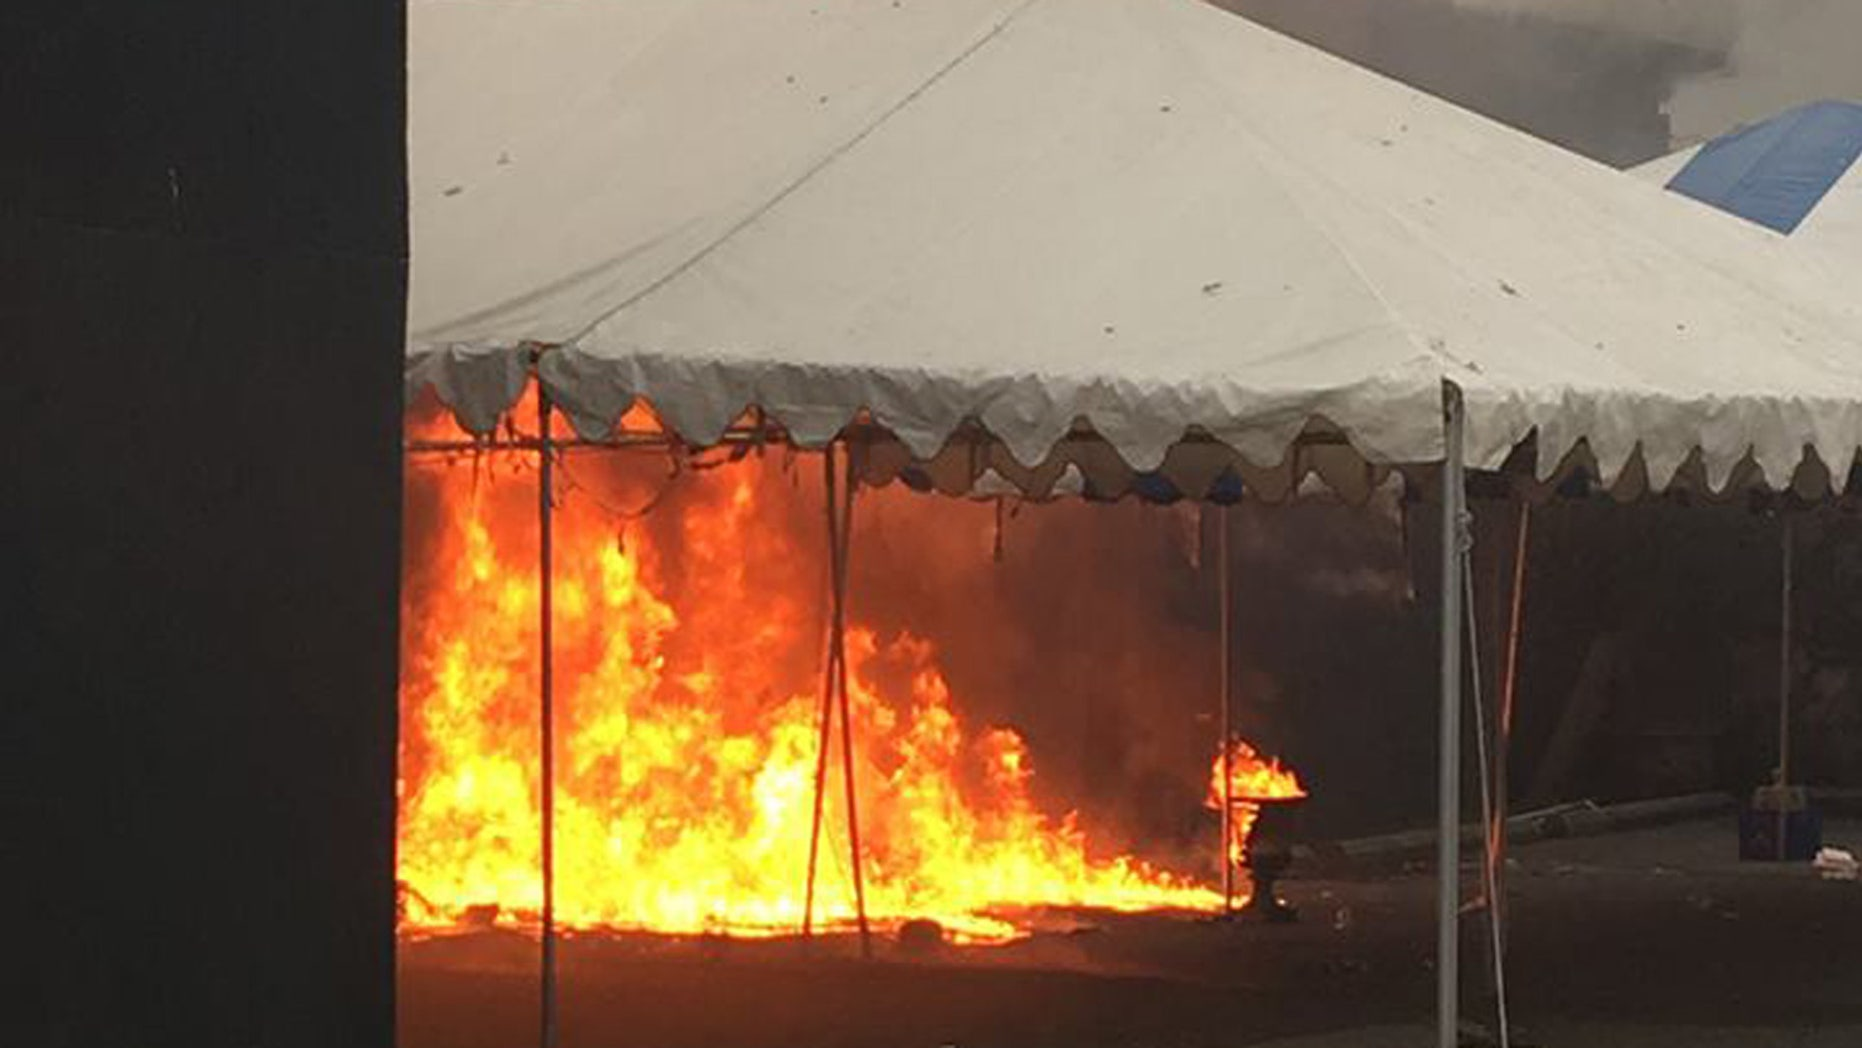 A fire started in a porta-potty damaged a warehouse site operated by Vancouver Art and Leisure.